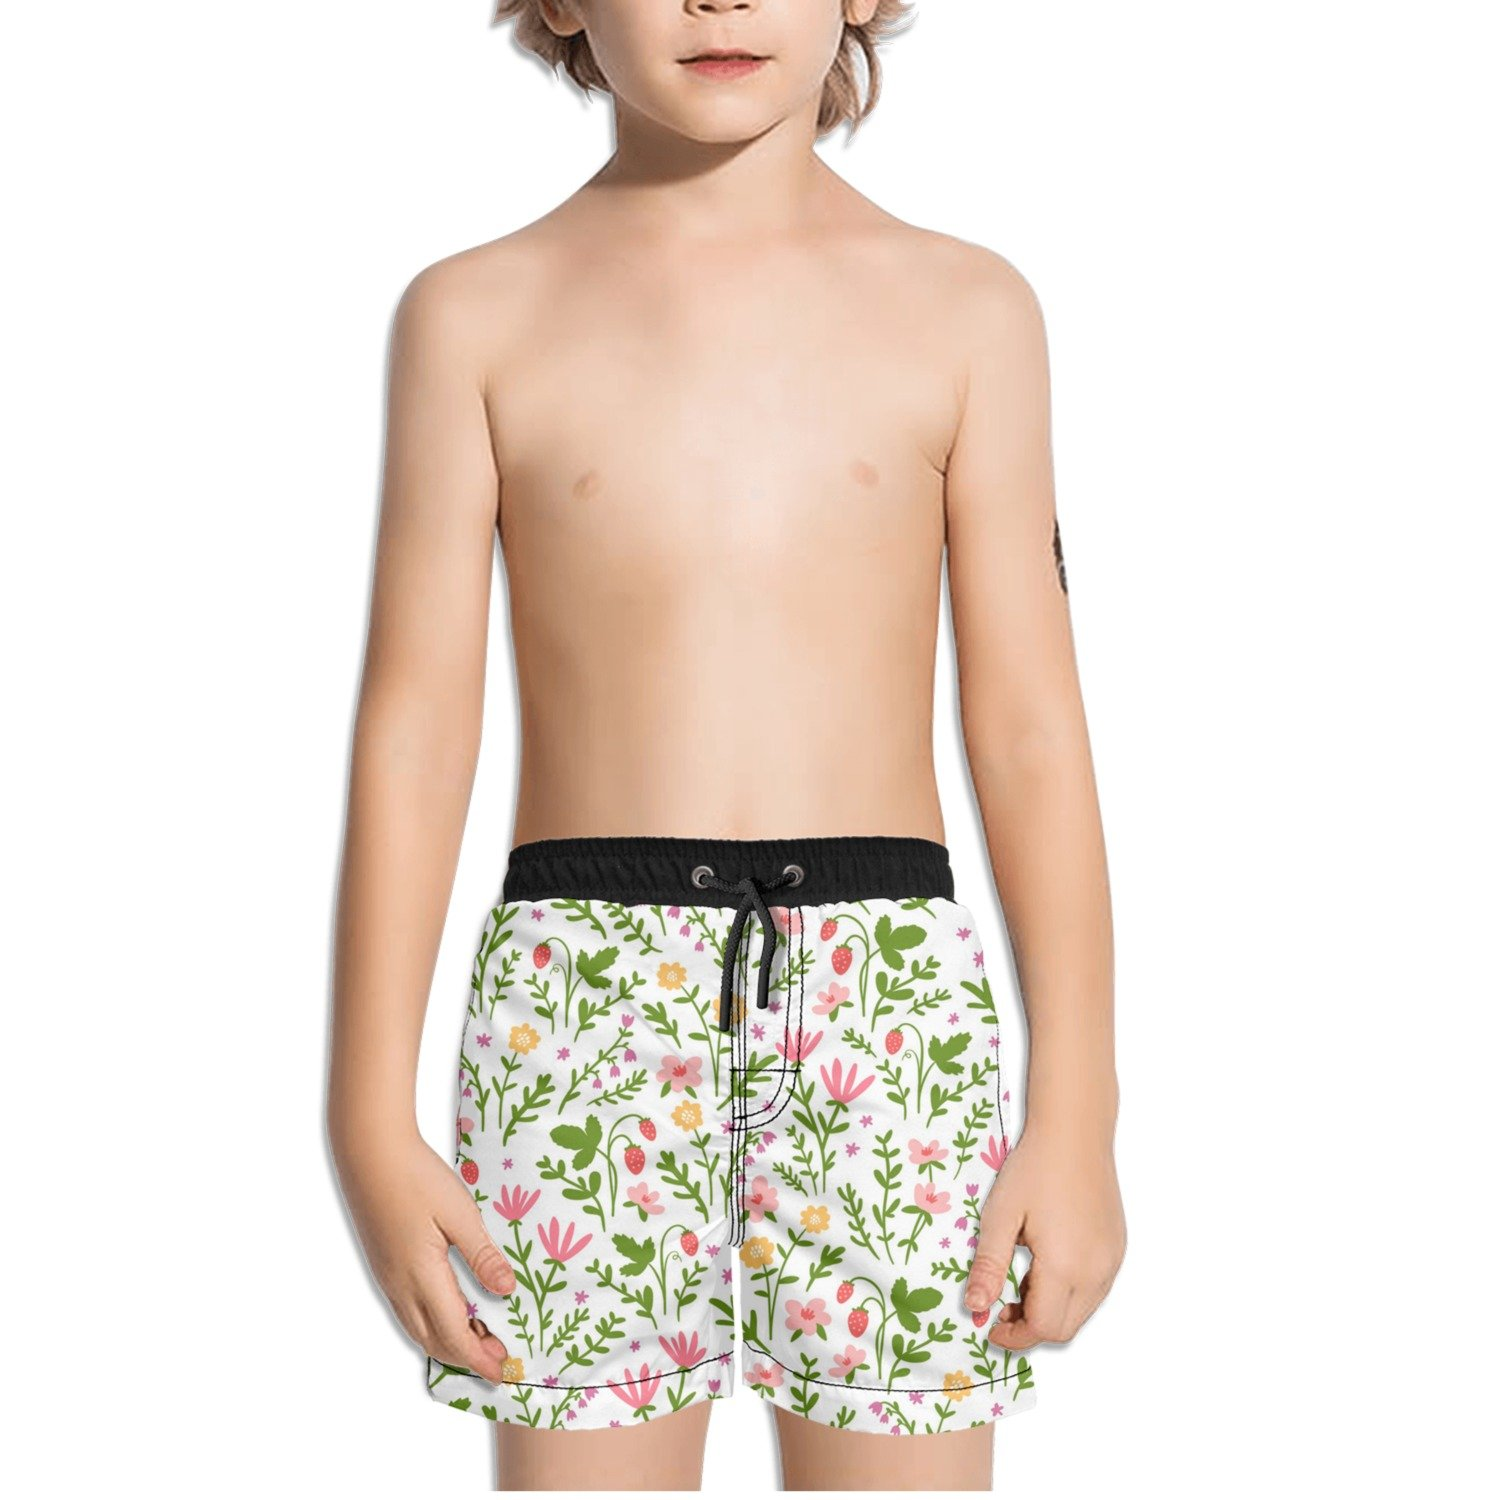 Ouxioaz Boys Swim Trunk Red Pink Flowers Leaf Beach Board Shorts